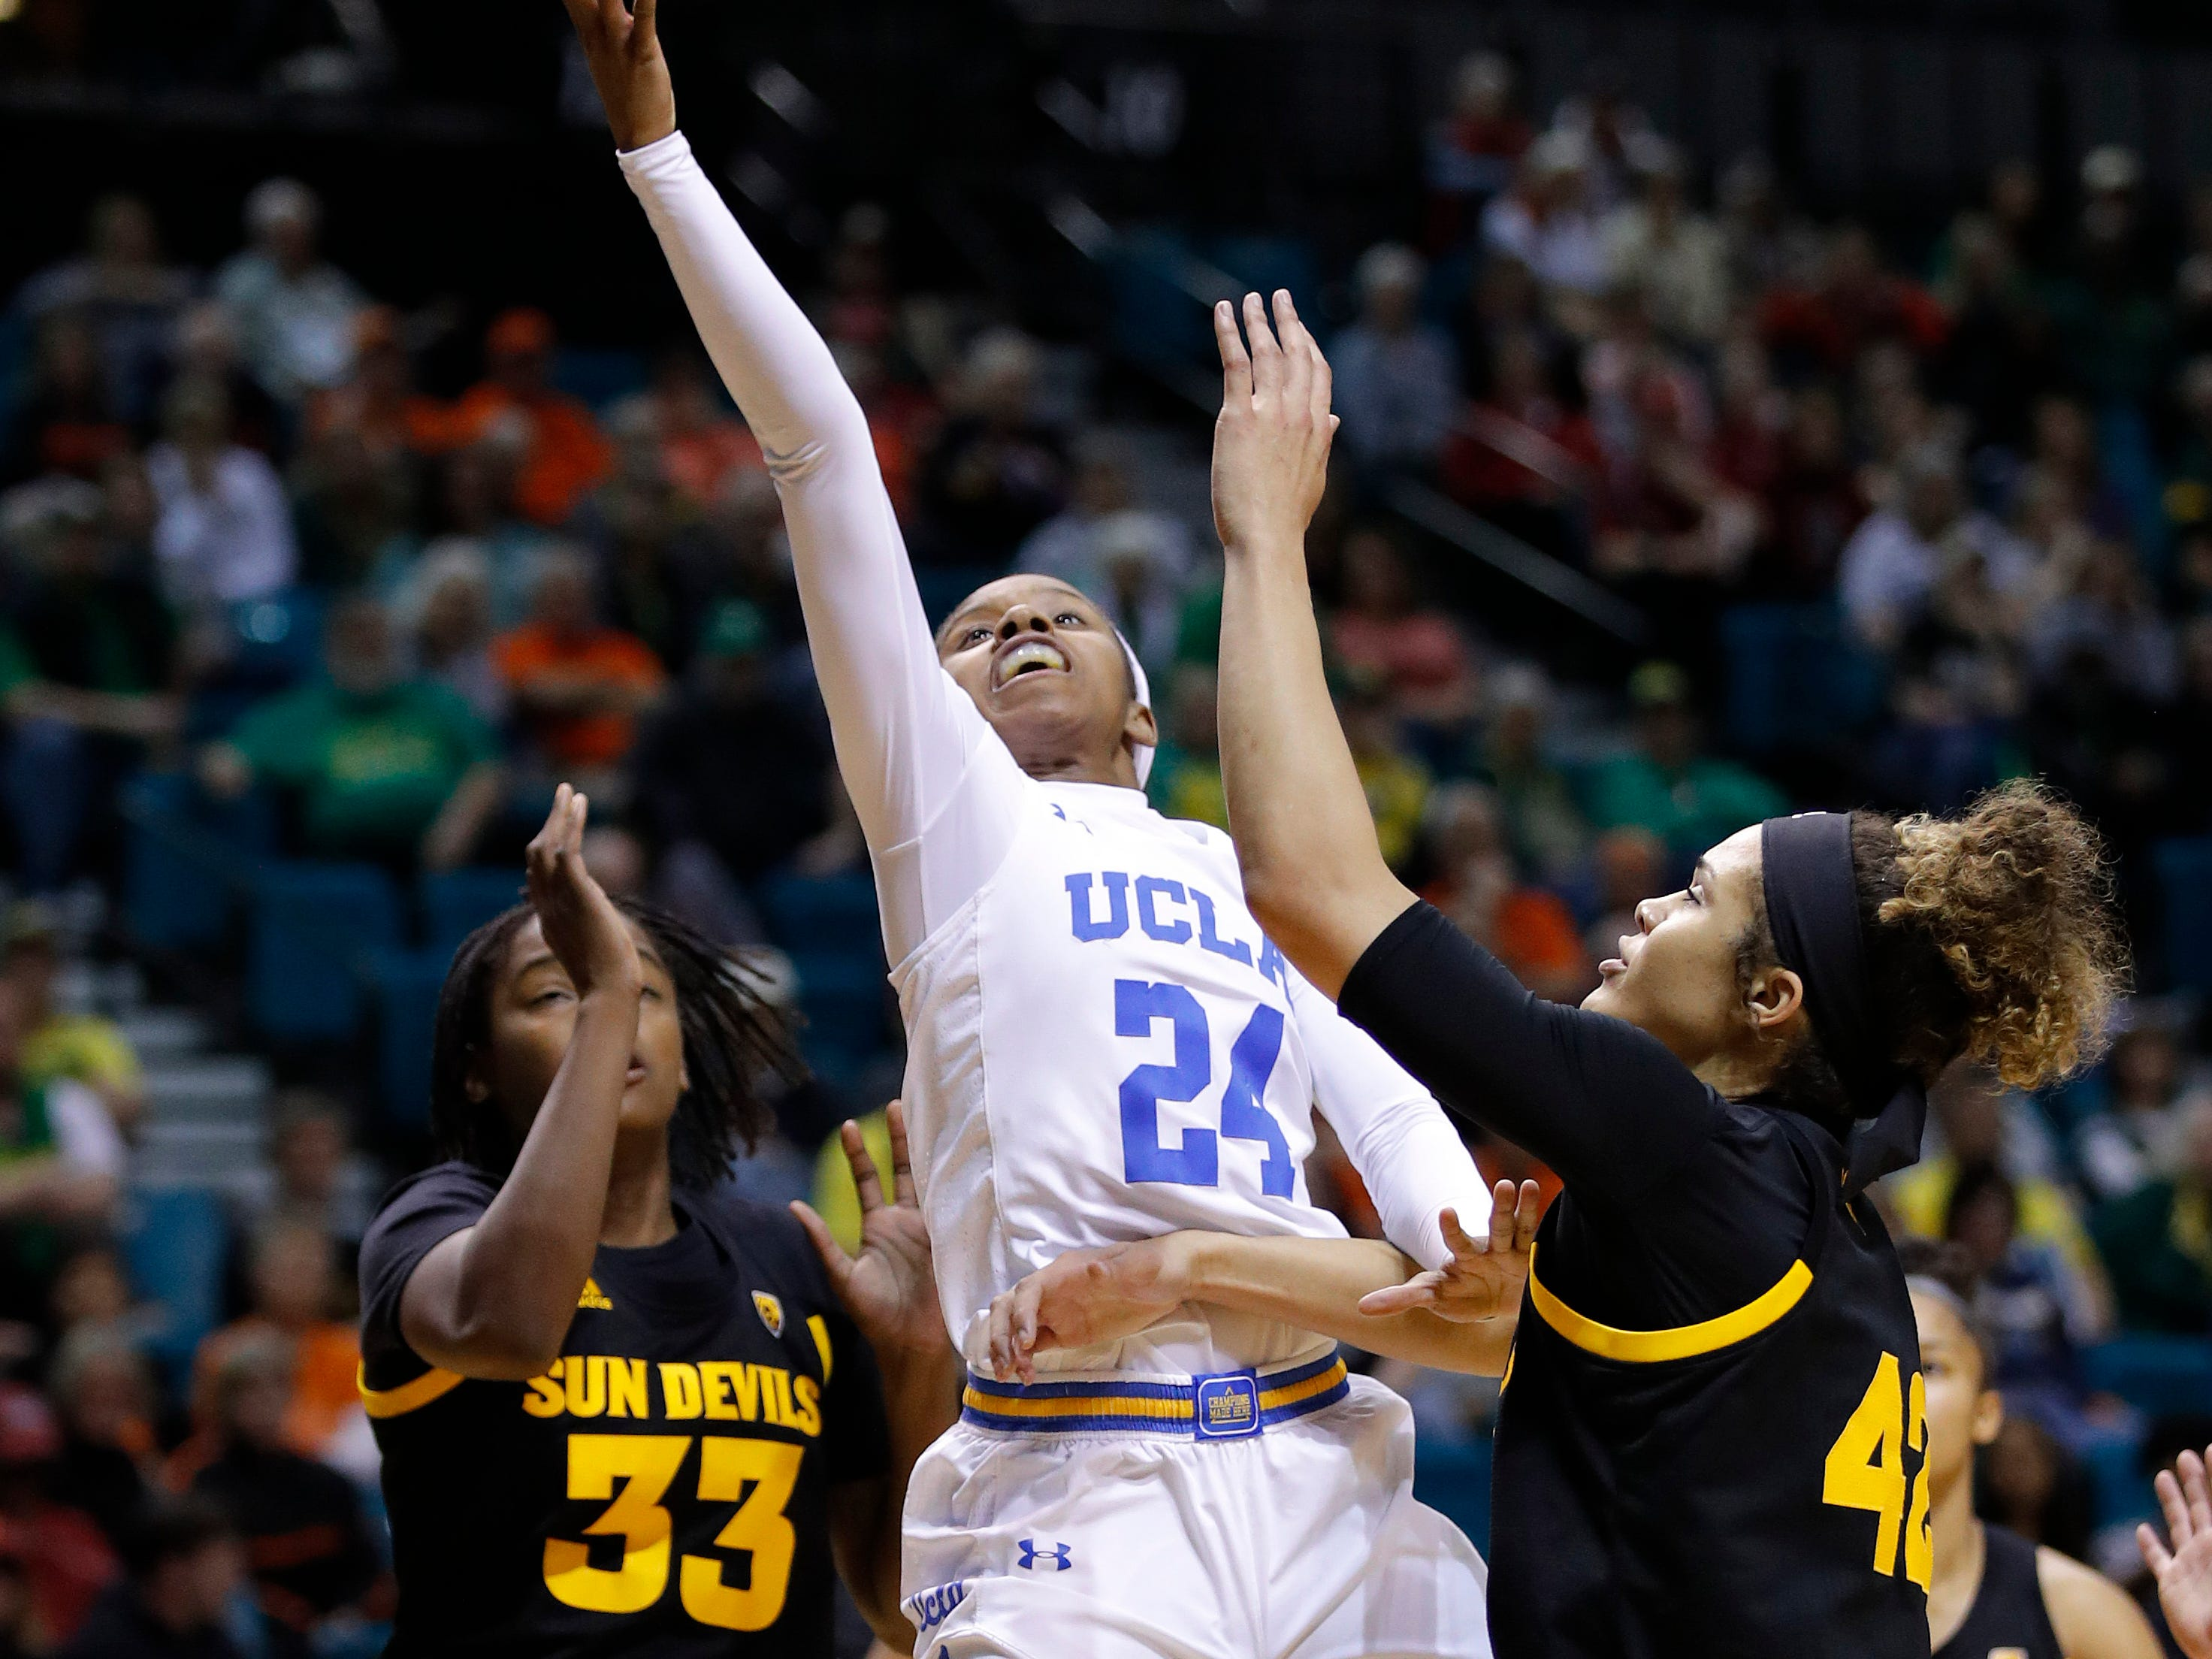 UCLA's Japreece Dean shoots between Arizona State's Charnea Johnson-Chapman, left, and Kianna Ibis during the second half of an NCAA college basketball game at the Pac-12 women's tournament Friday, March 8, 2019, in Las Vegas.